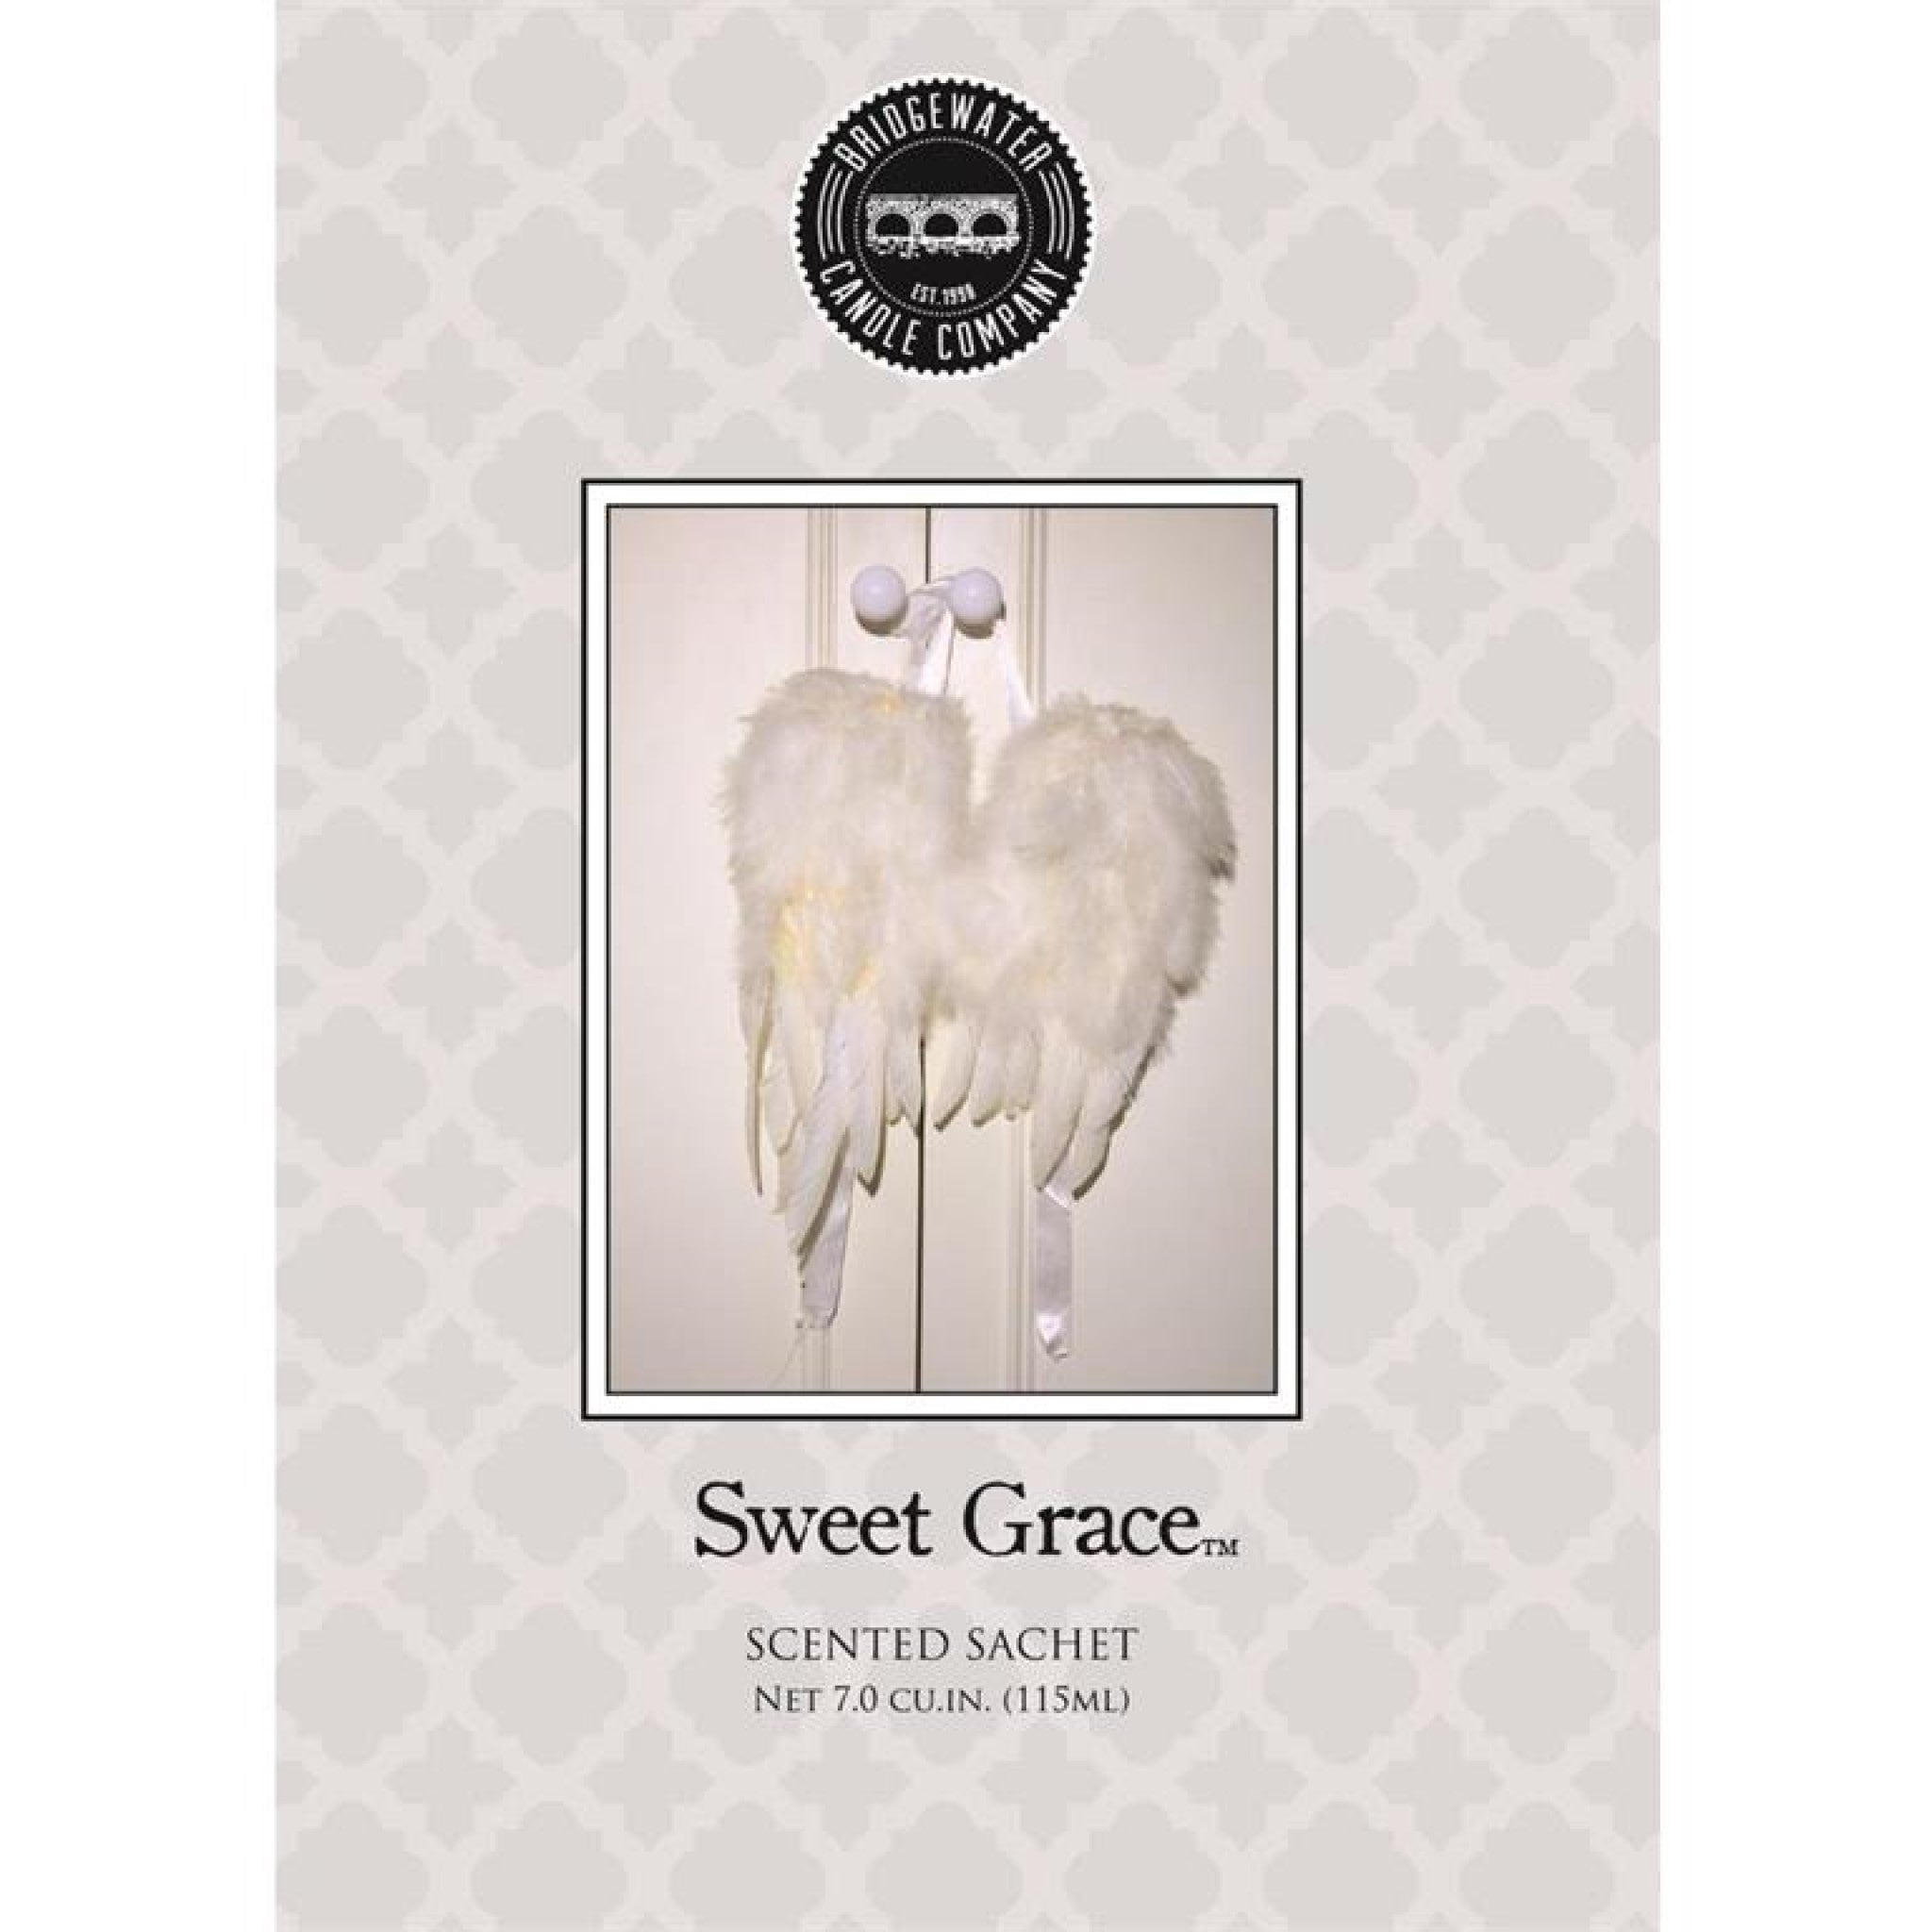 Bridgewater Candles Sweet Grace Sachet